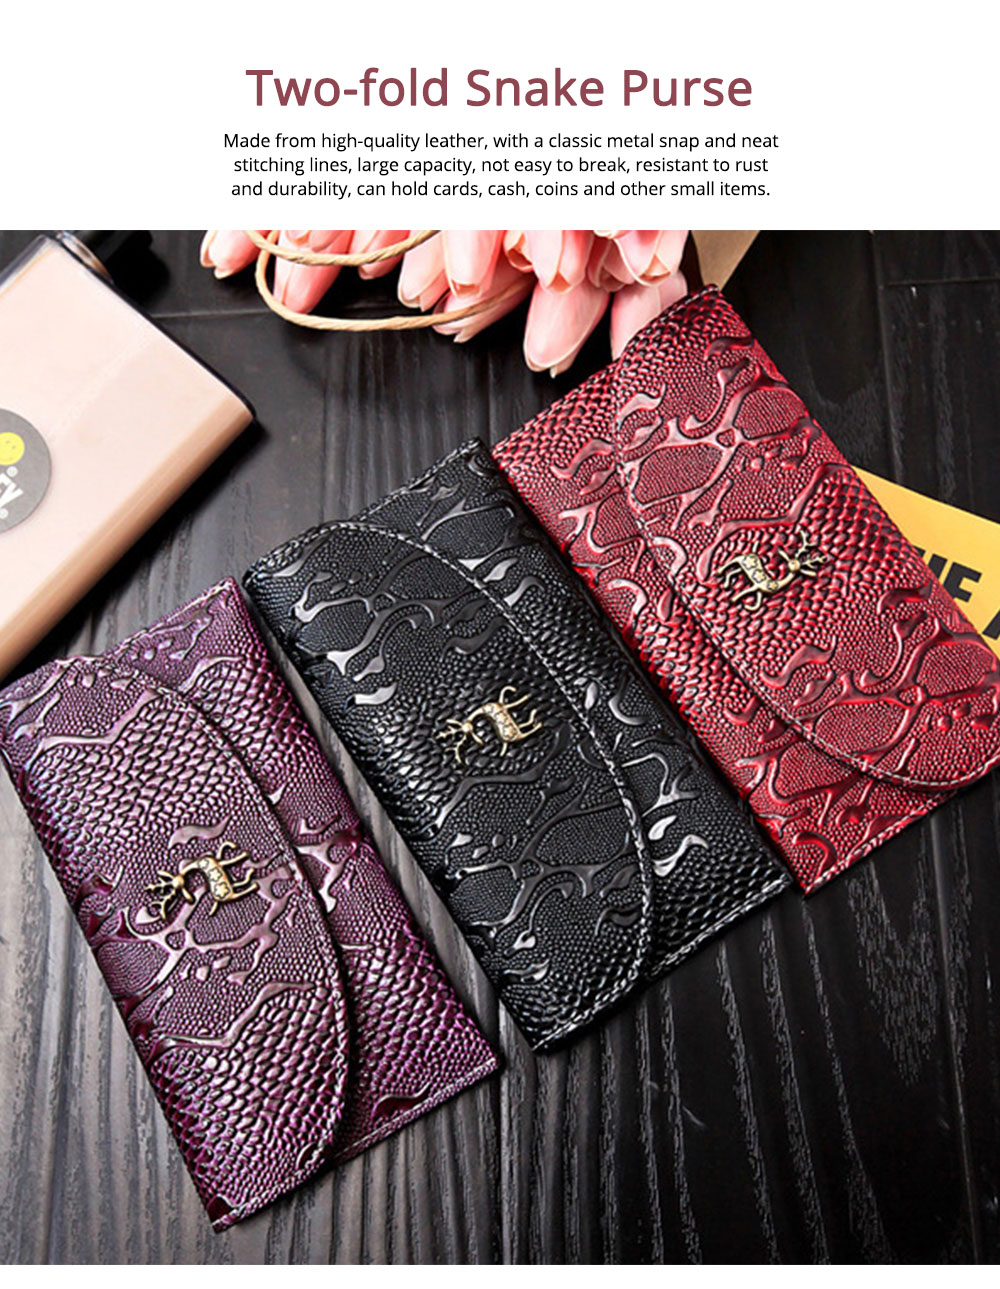 Two-fold Snake Leather Clutch, Ladies Sleek Minimalist Buckle Wallet with Card Holder, Coins Pocket, Driving License Card Slot 0